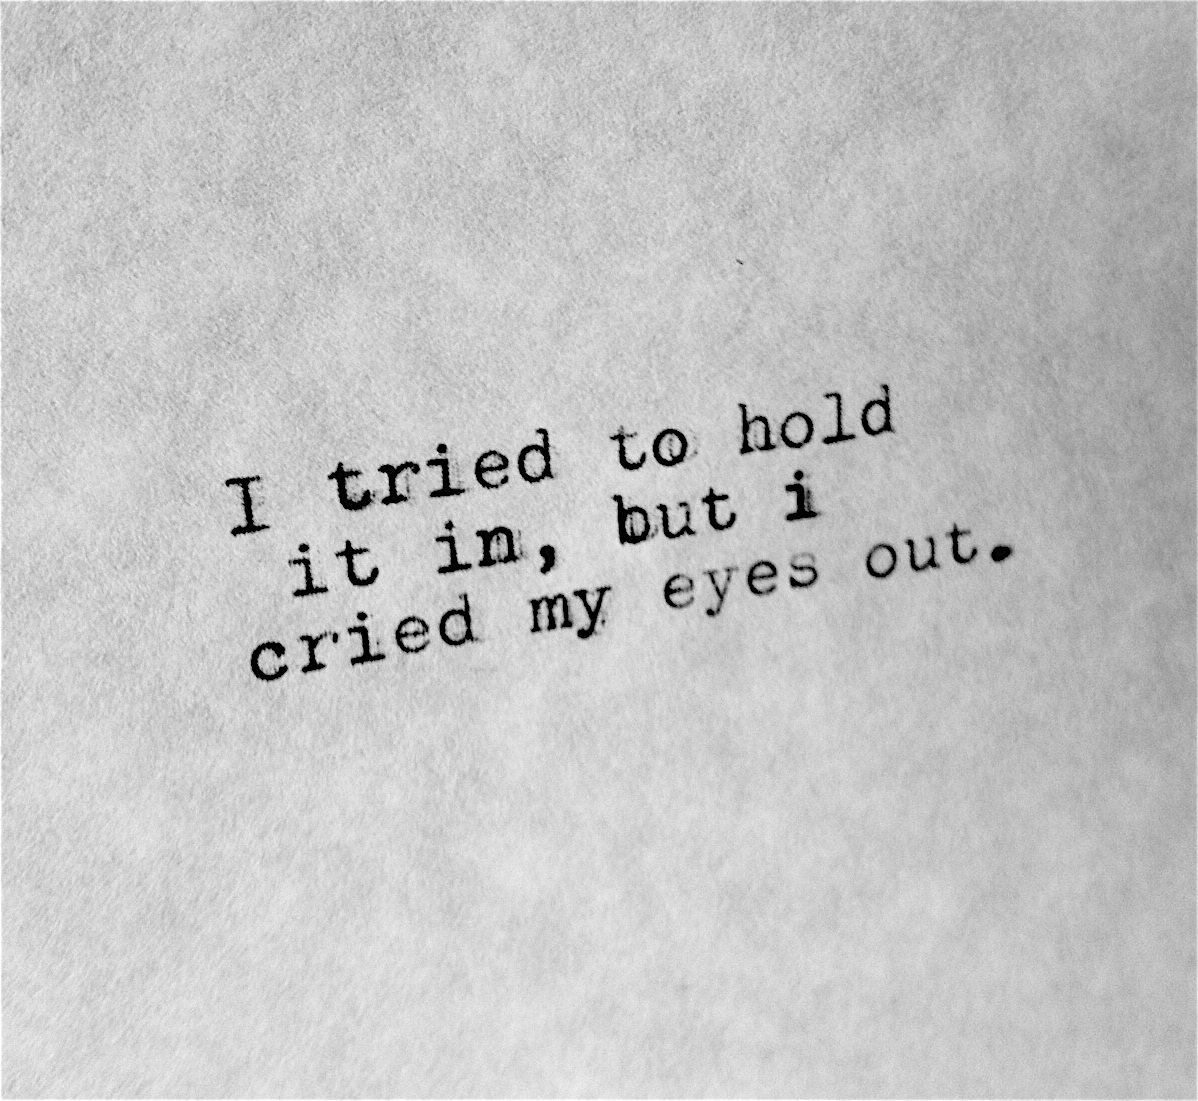 Sad Crying Quotes About Love: 30+ Best Collection Of Sad Crying Quotes